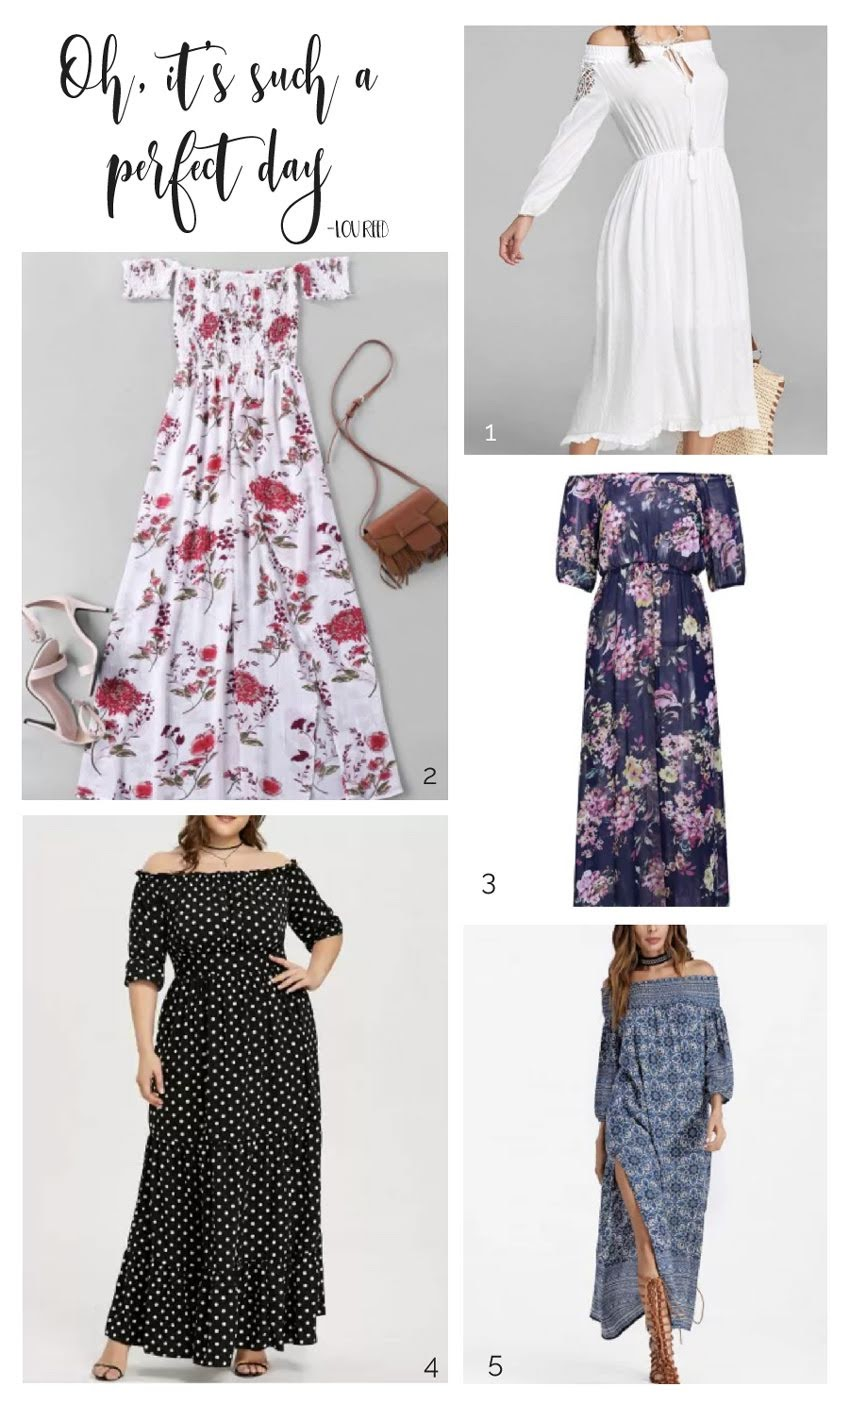 Some long dresses from Rosegal